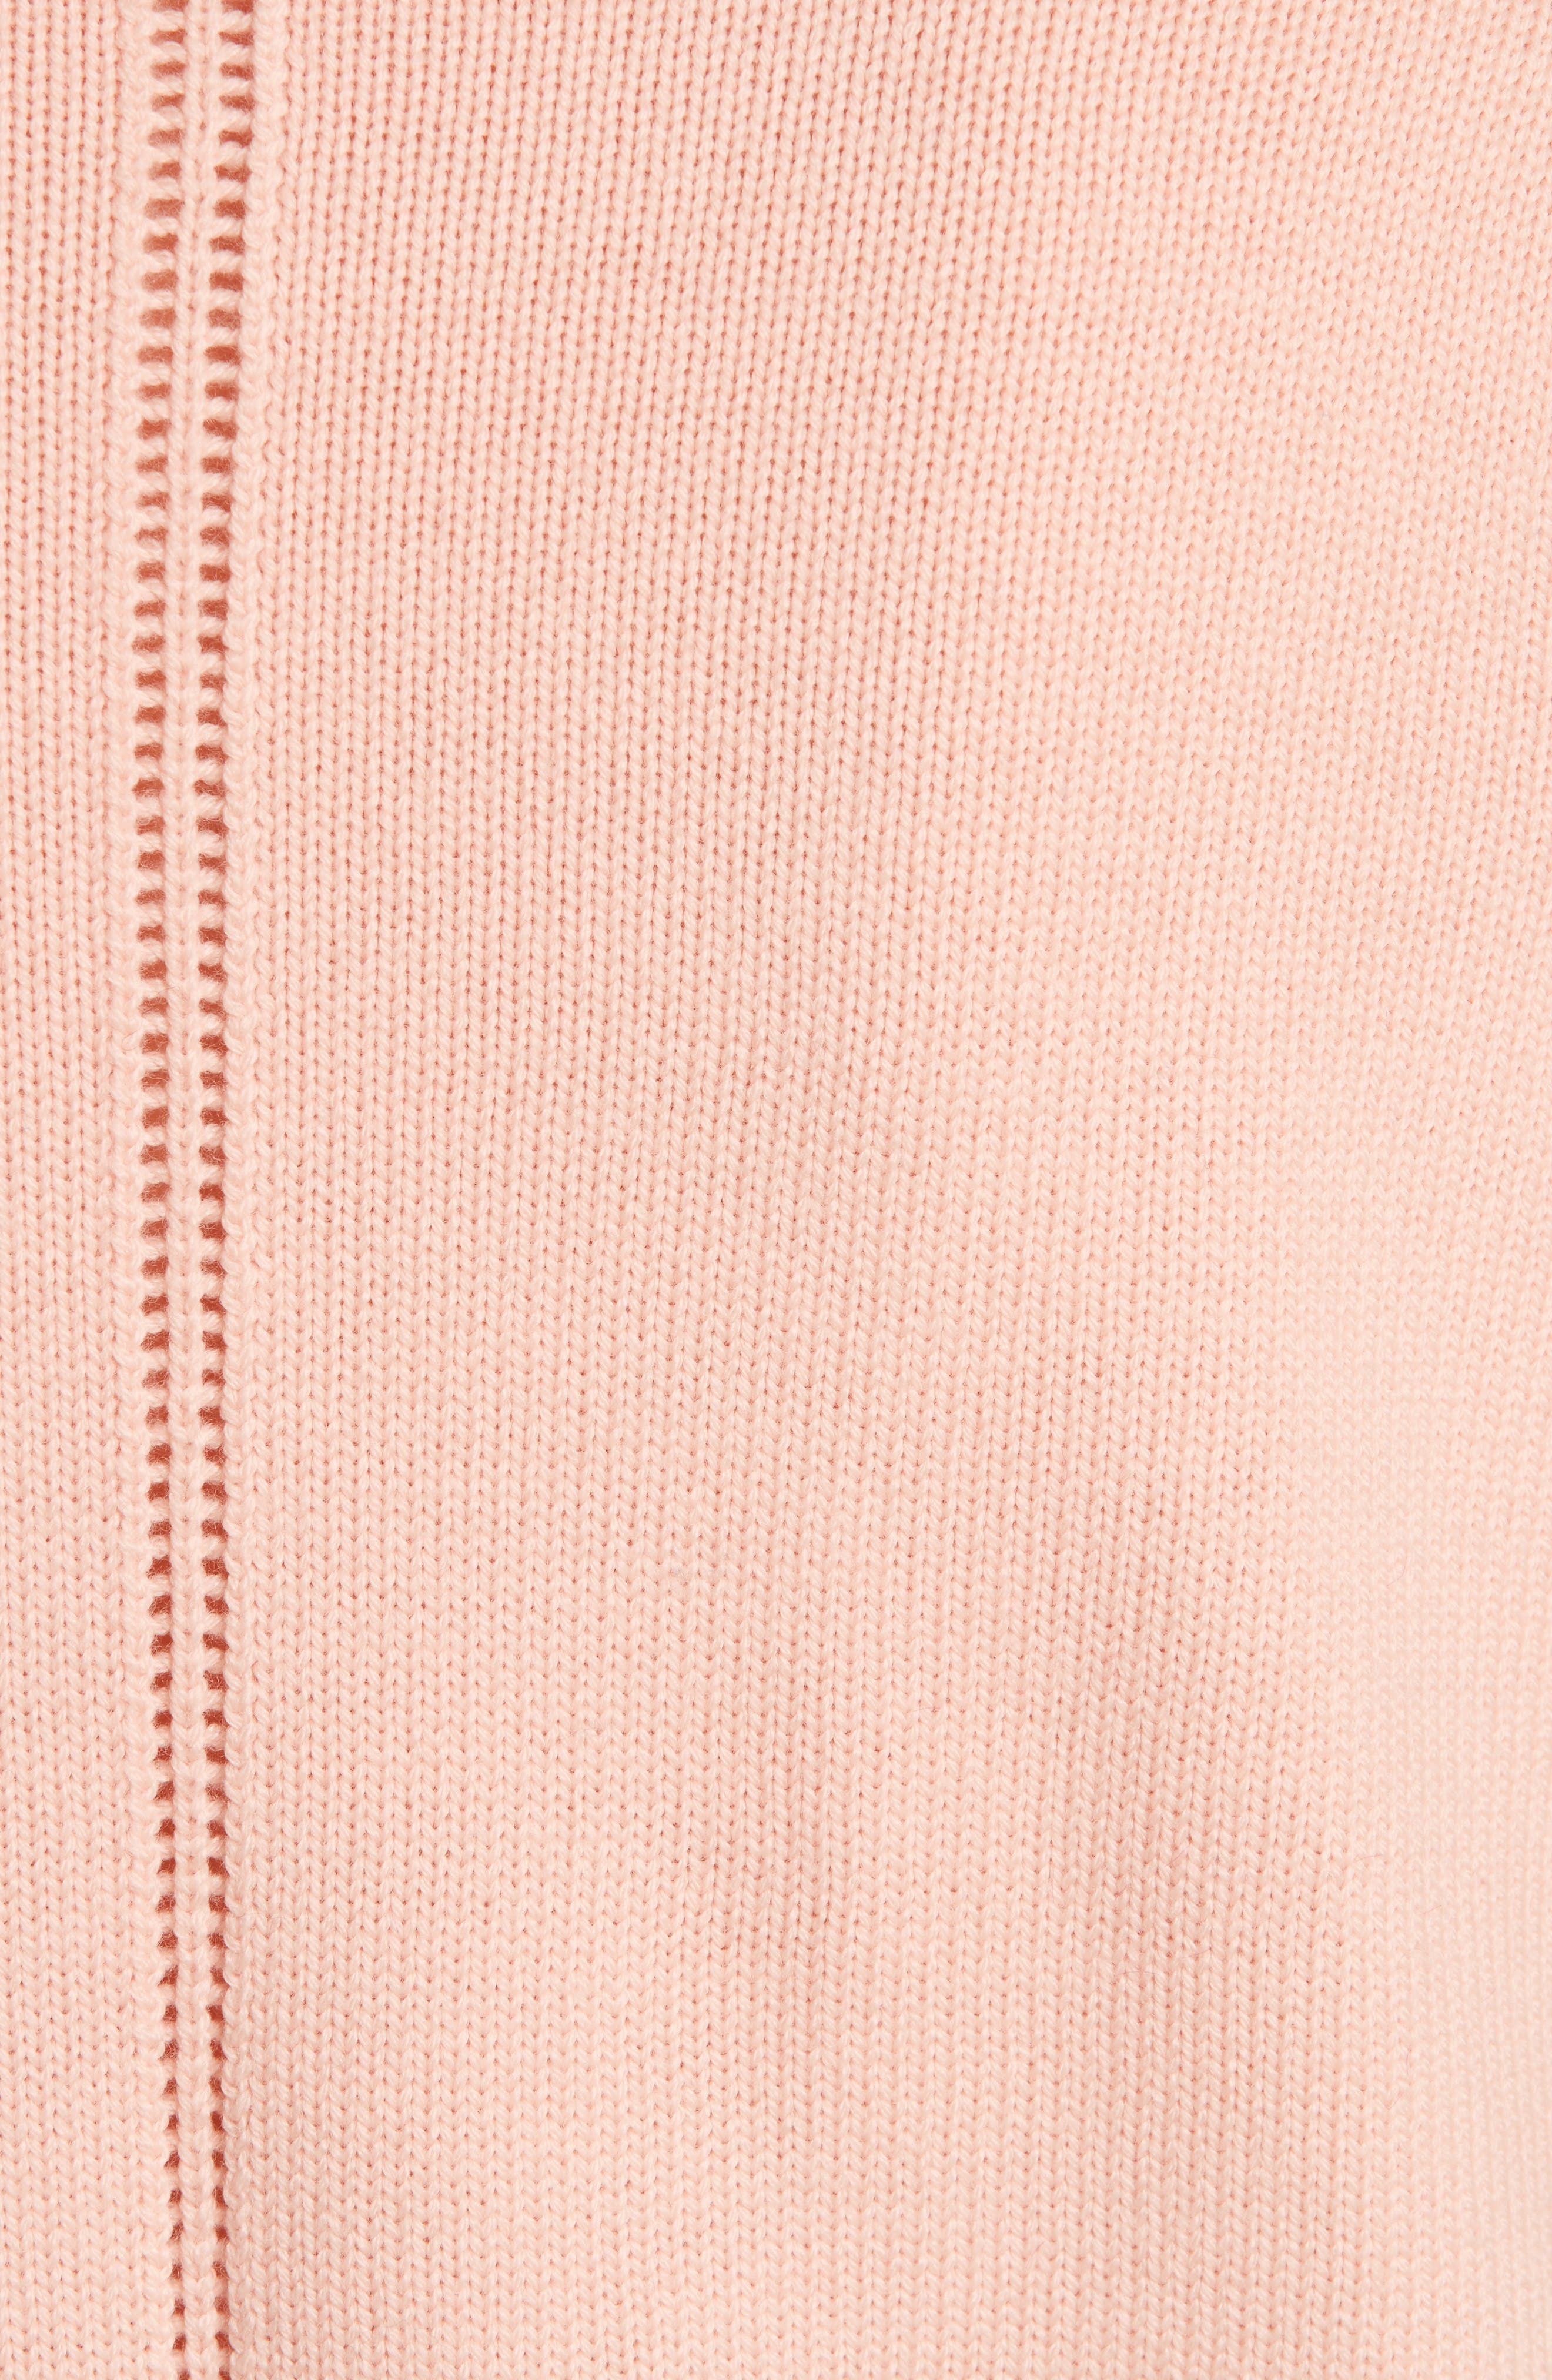 Lace Trim Puff Sleeve Sweater,                             Alternate thumbnail 6, color,                             Blush